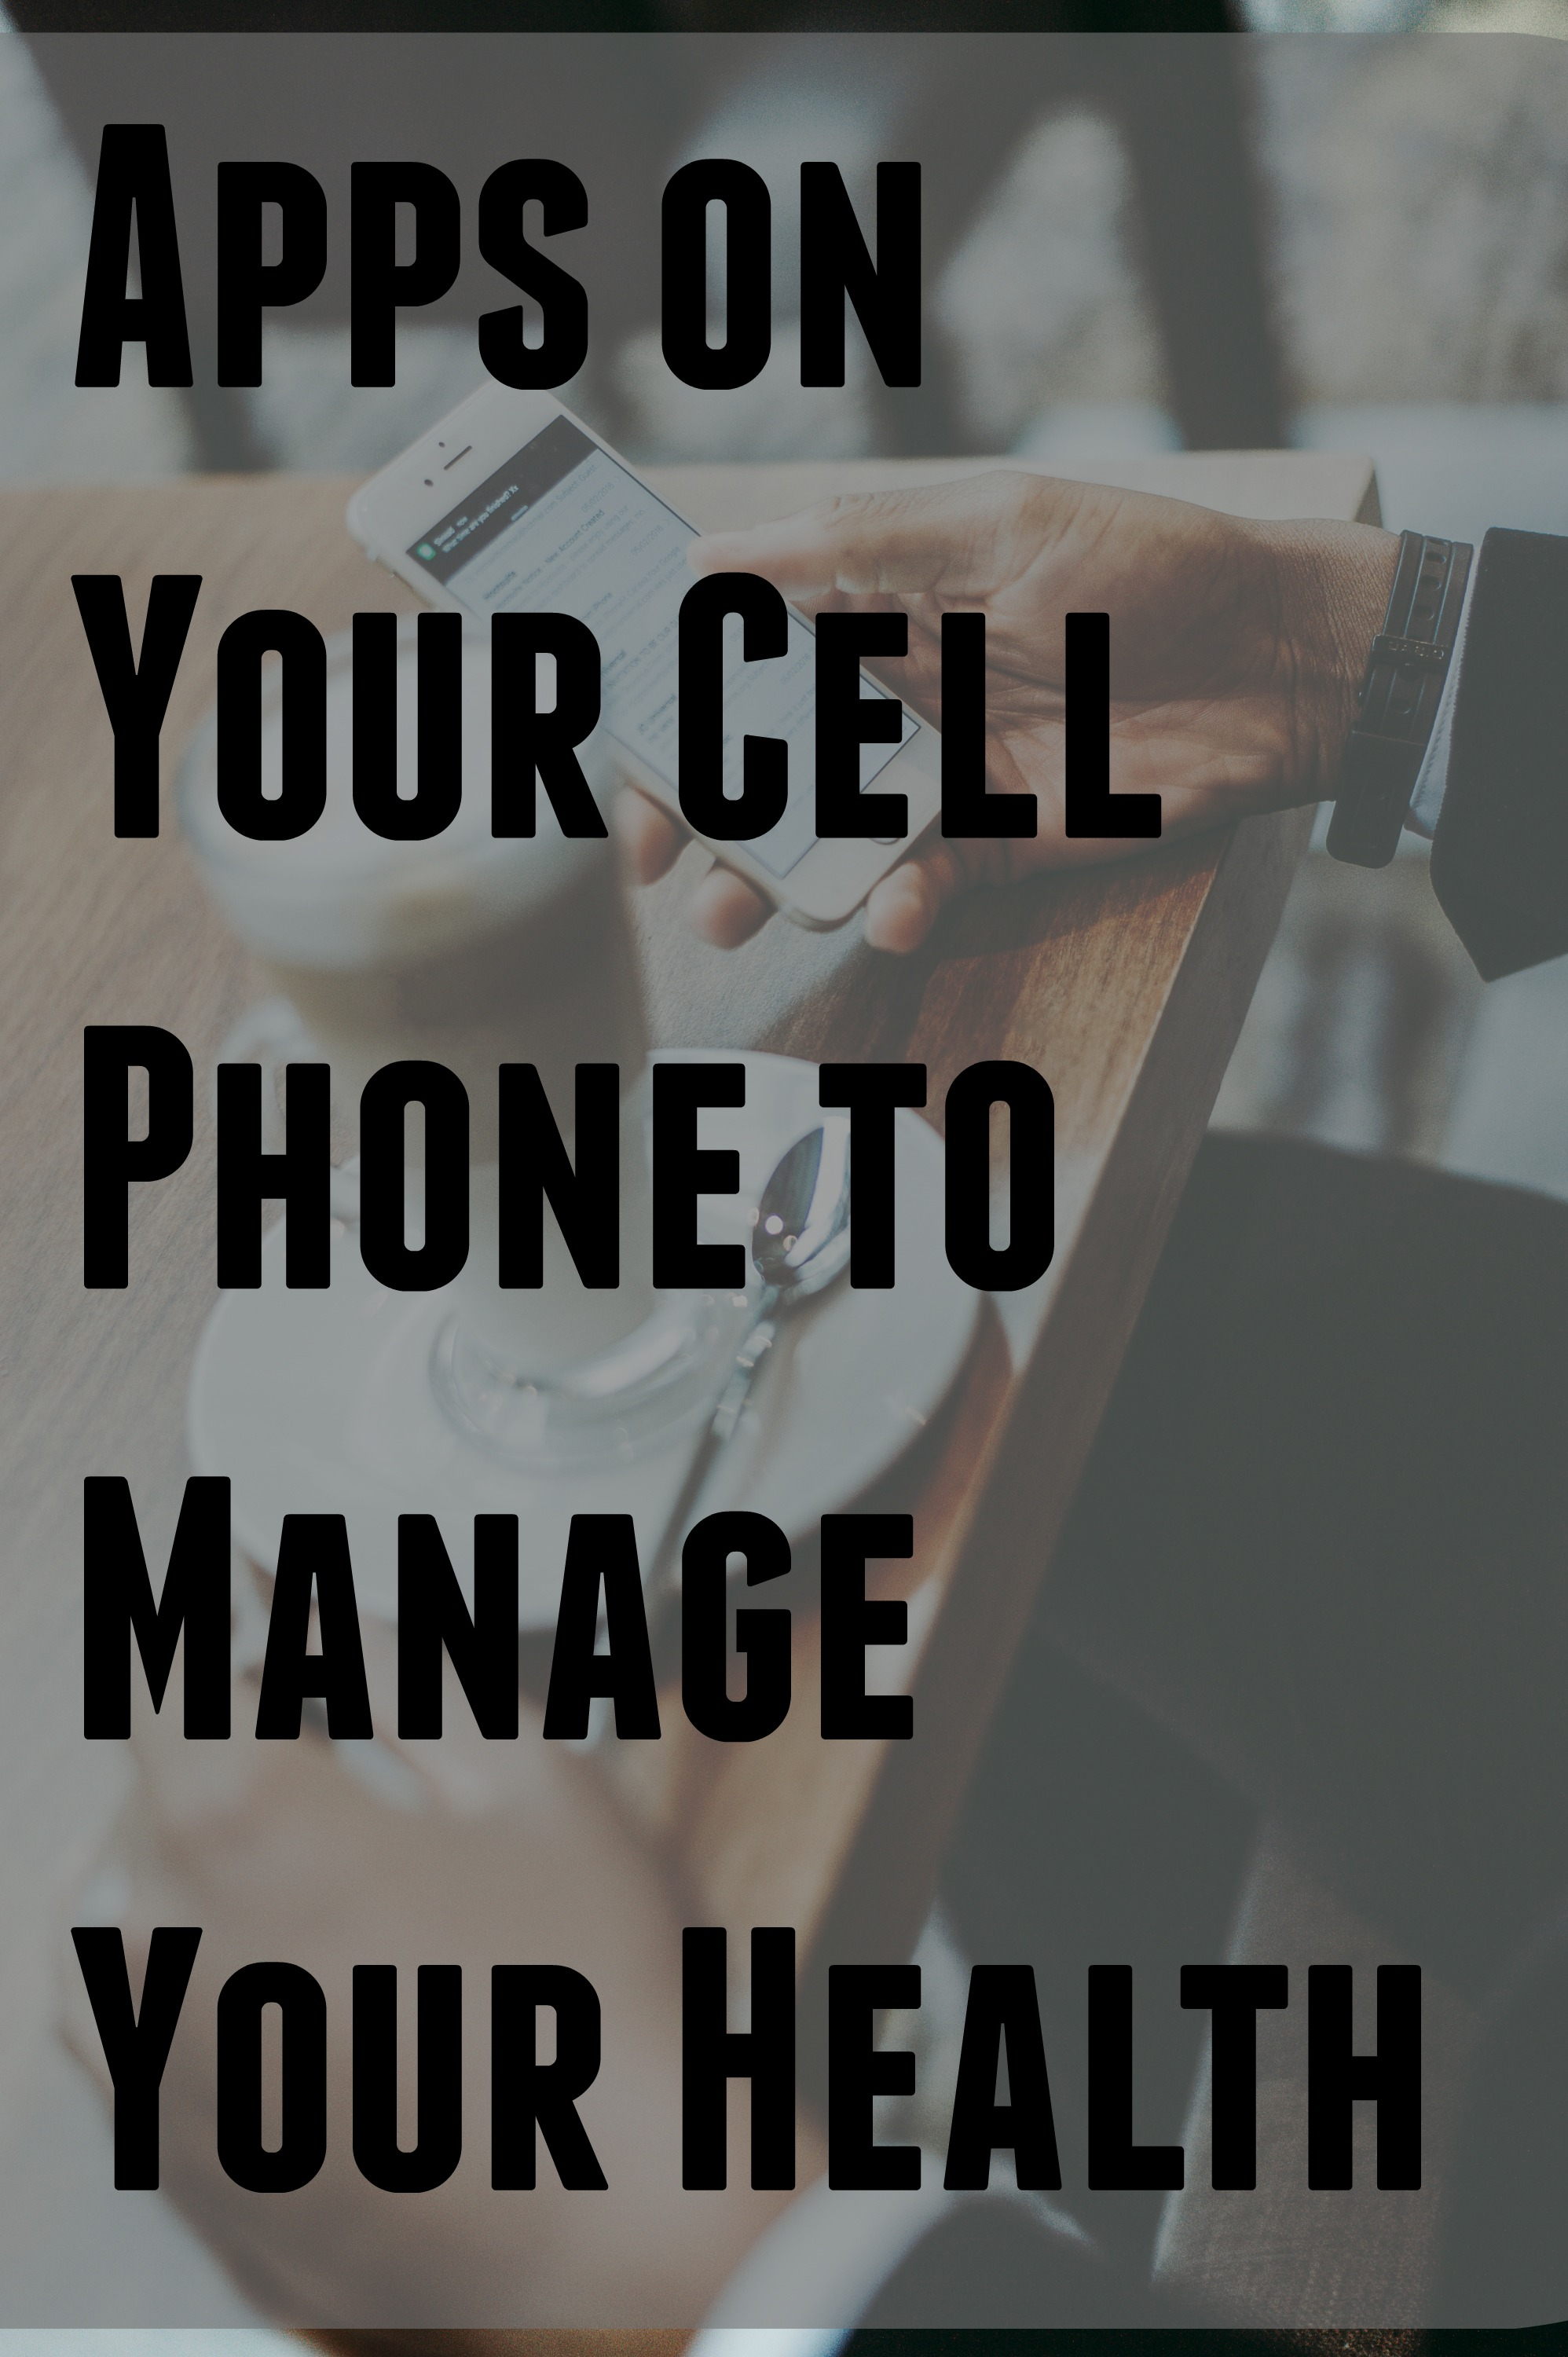 Apps on Your Cell Phone to Manage Your Health